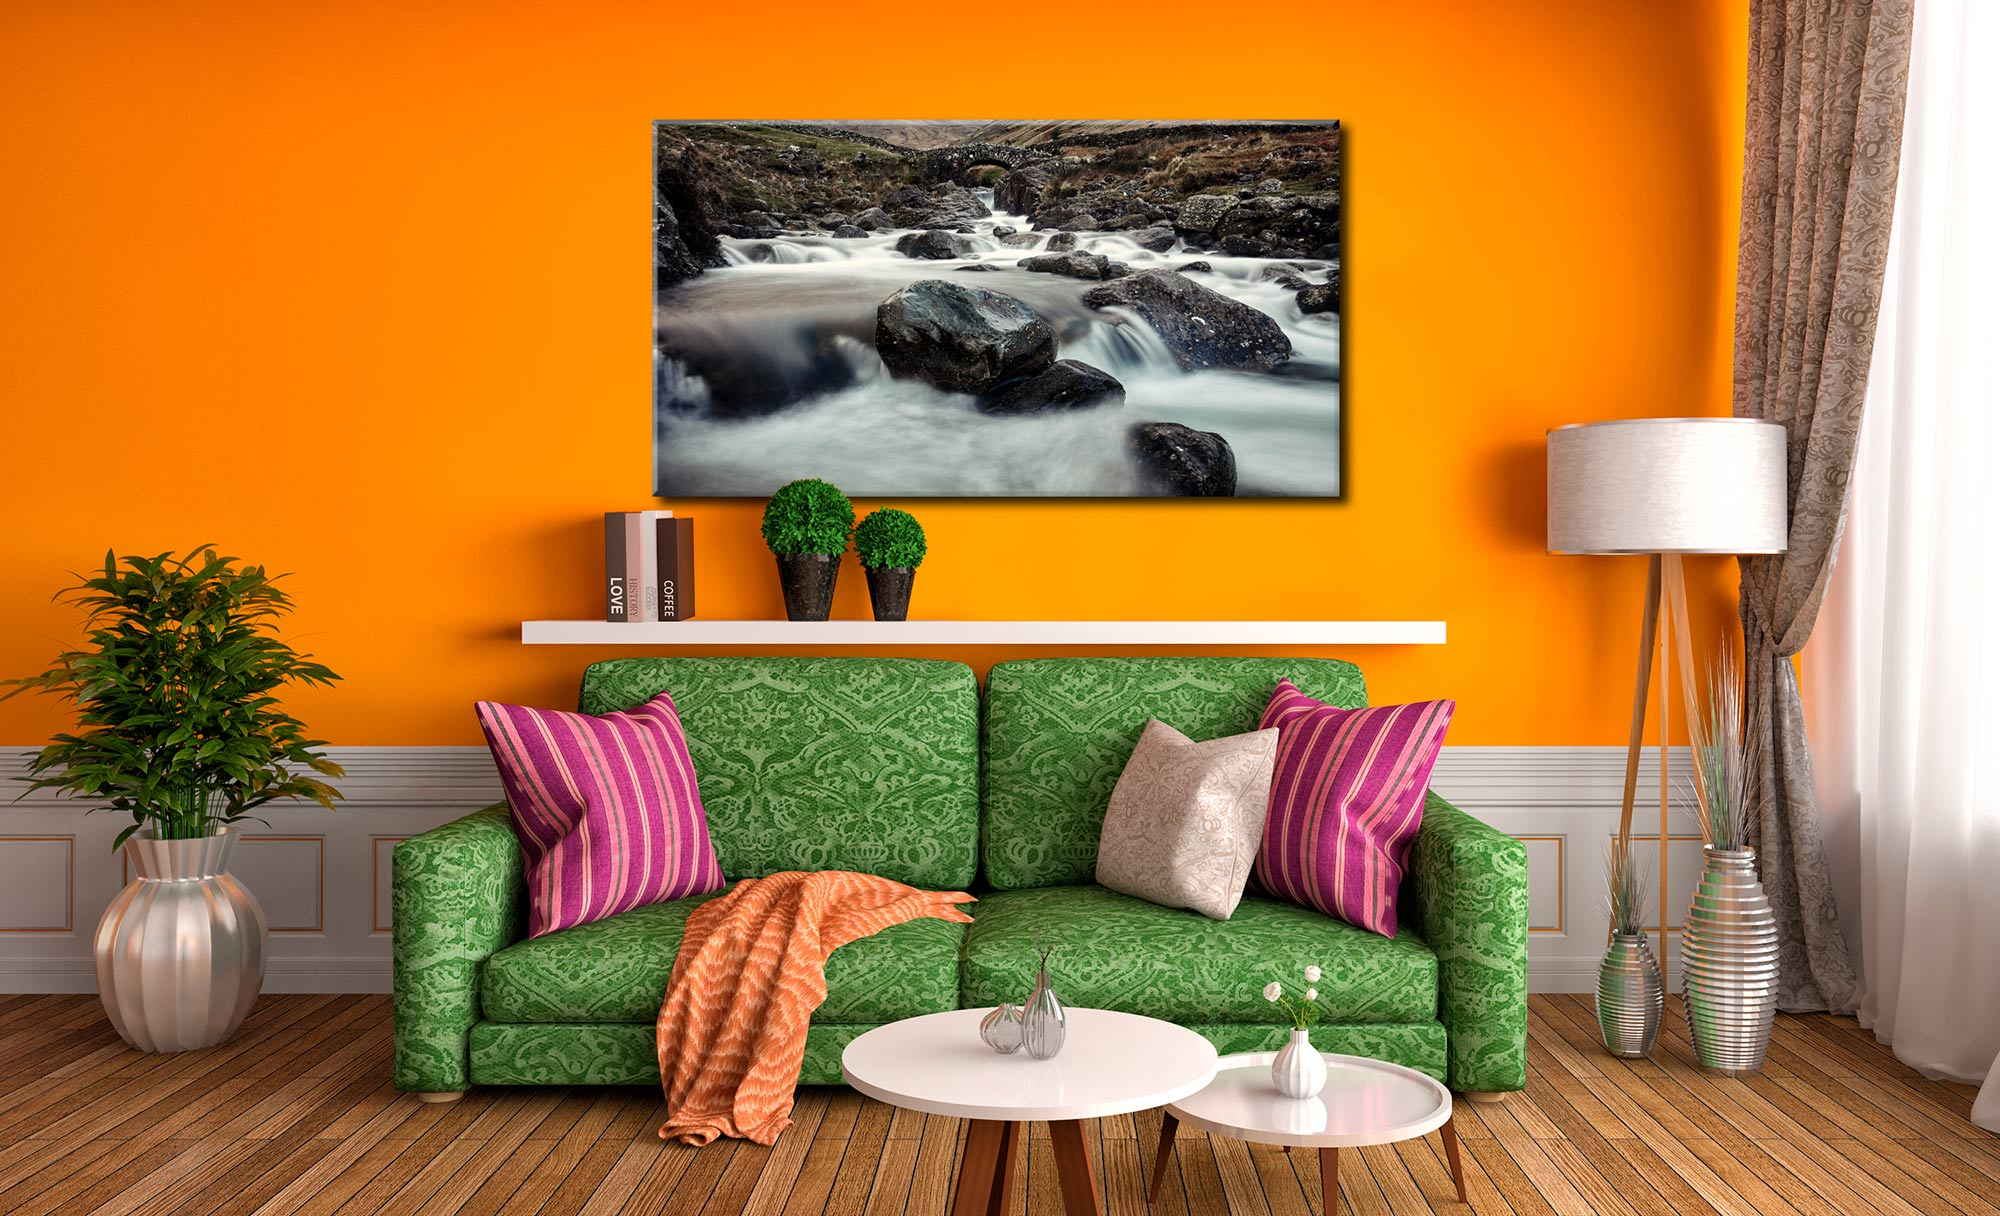 Grains Gill and Stockley Bridge - Canvas Print on Wall